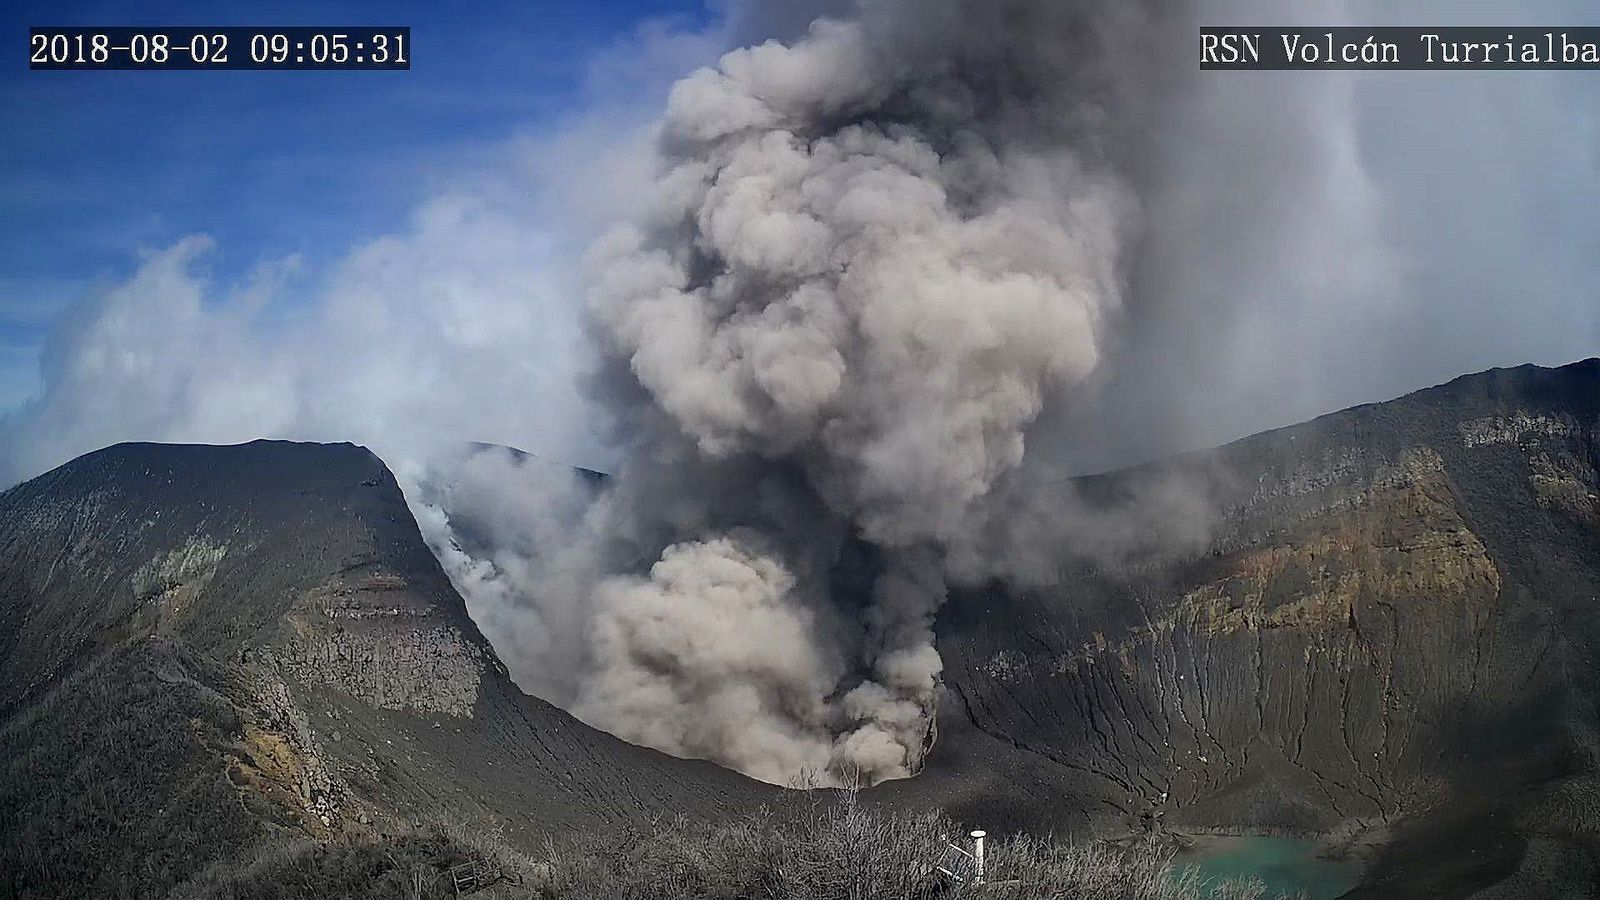 Turrialba  - émission passive de cendres le 02.08.2018 / 9h05 - webcam RSN